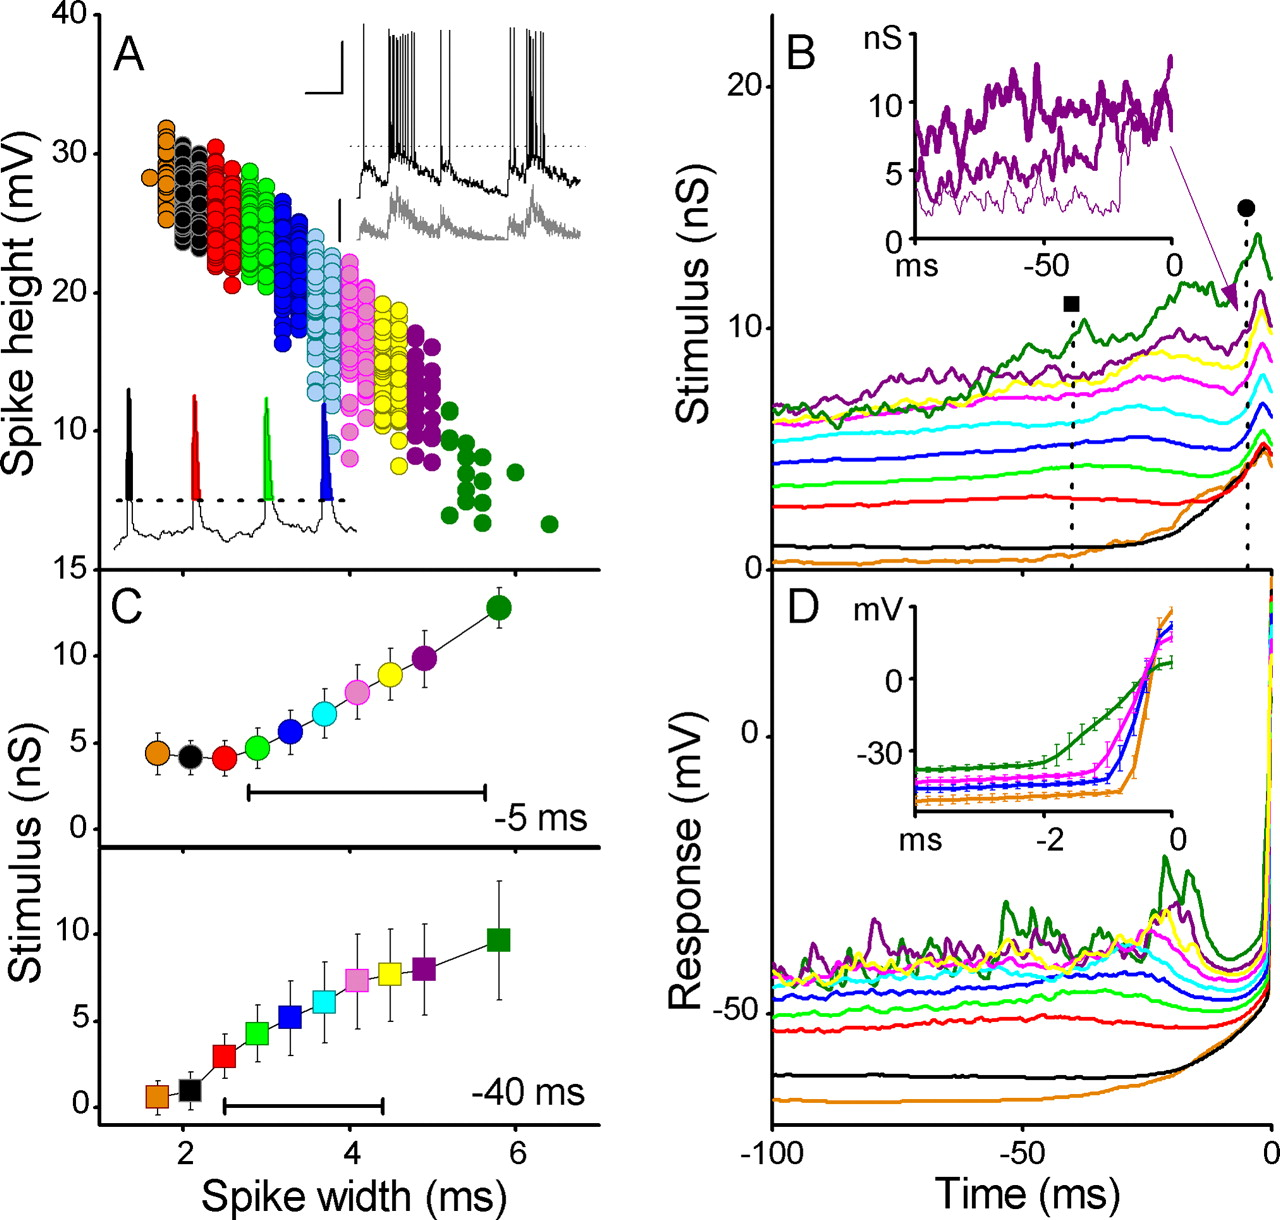 Stimulus History Reliably Shapes Action Potential Waveforms Of Cortical Neurons